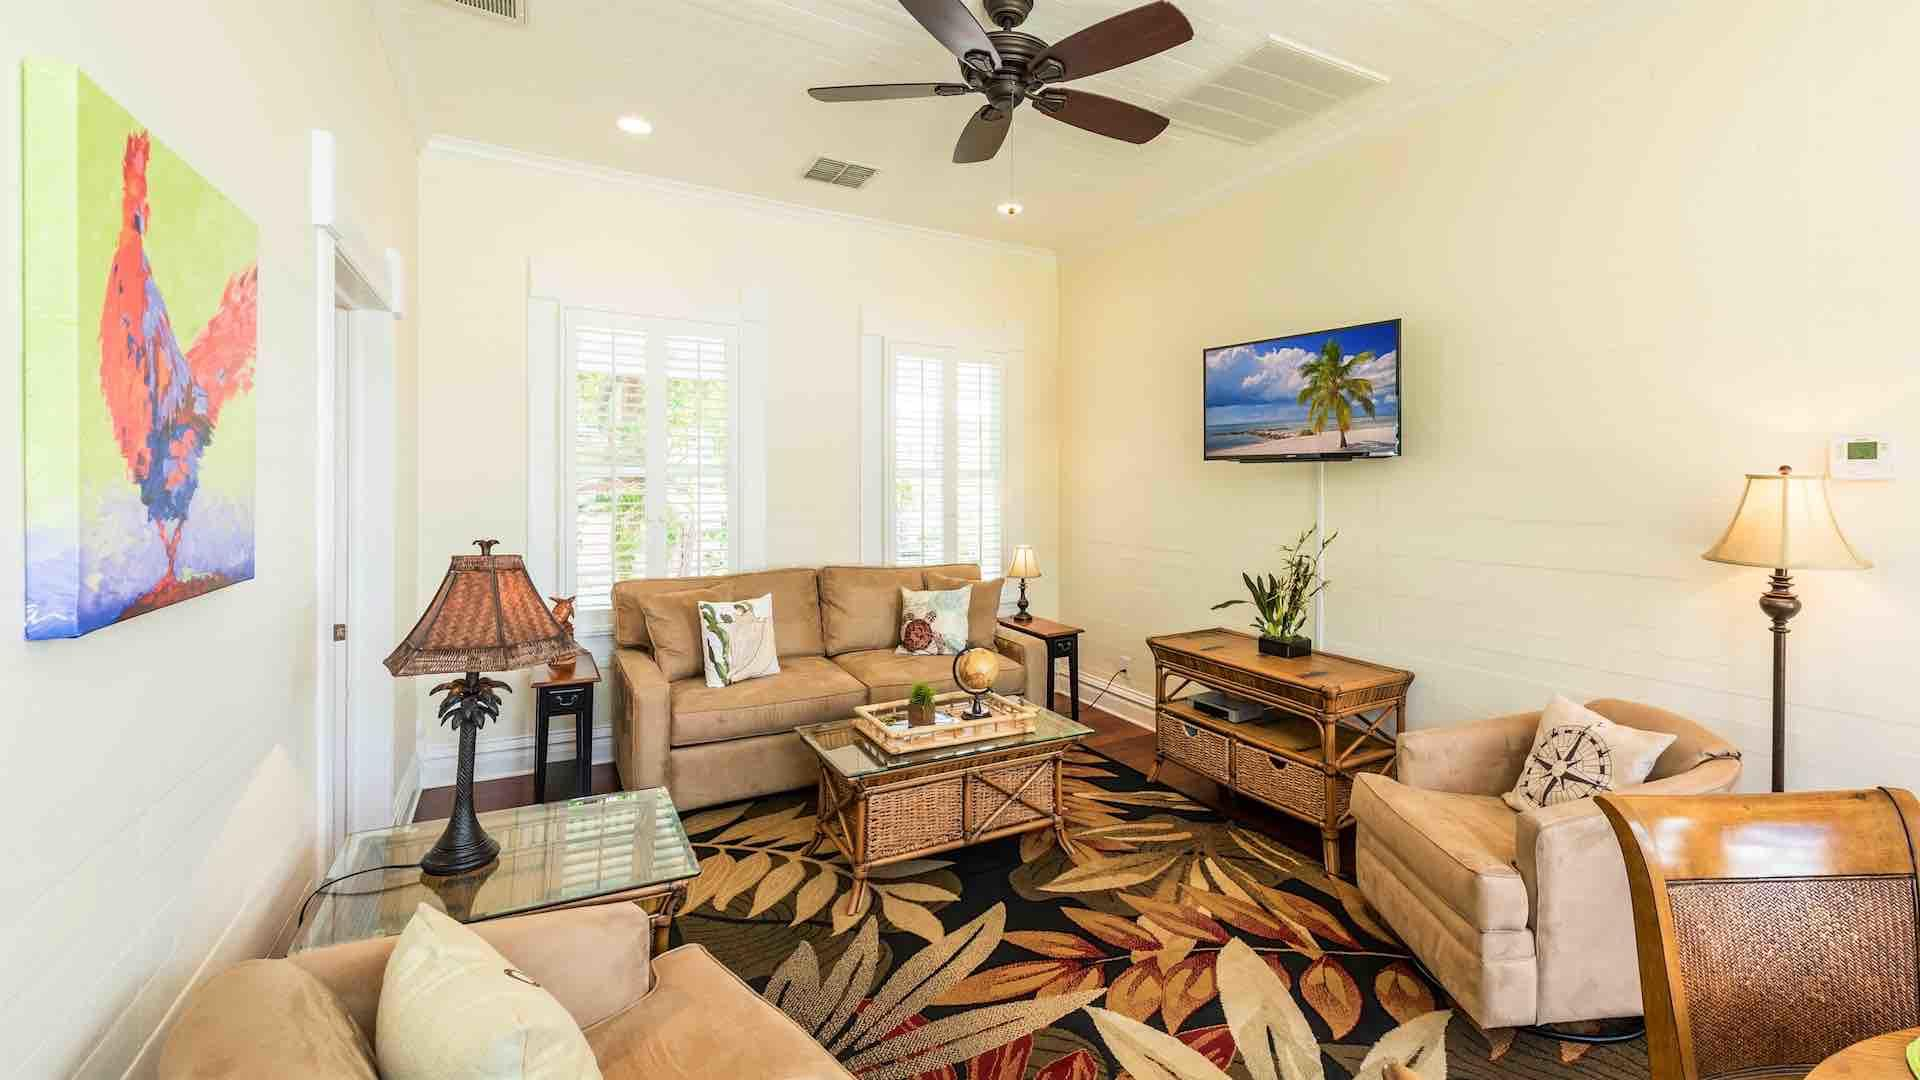 Villa Angelita is a modern Old Town condo, designed for a real downtown experience in the Conch Republic...